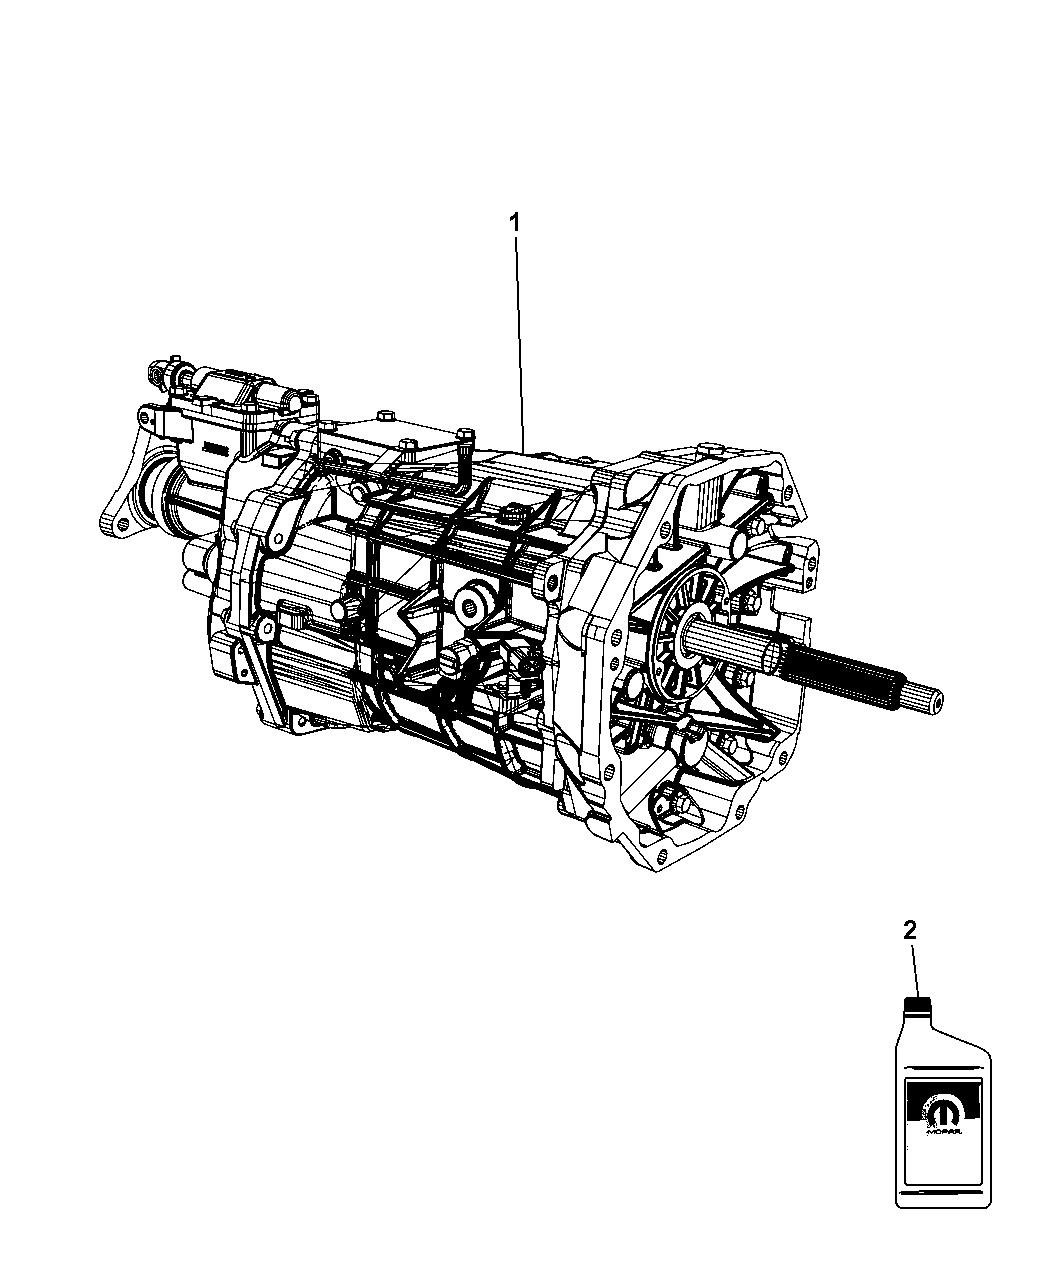 2009 Dodge Challenger Transmission / Transaxle Assembly of